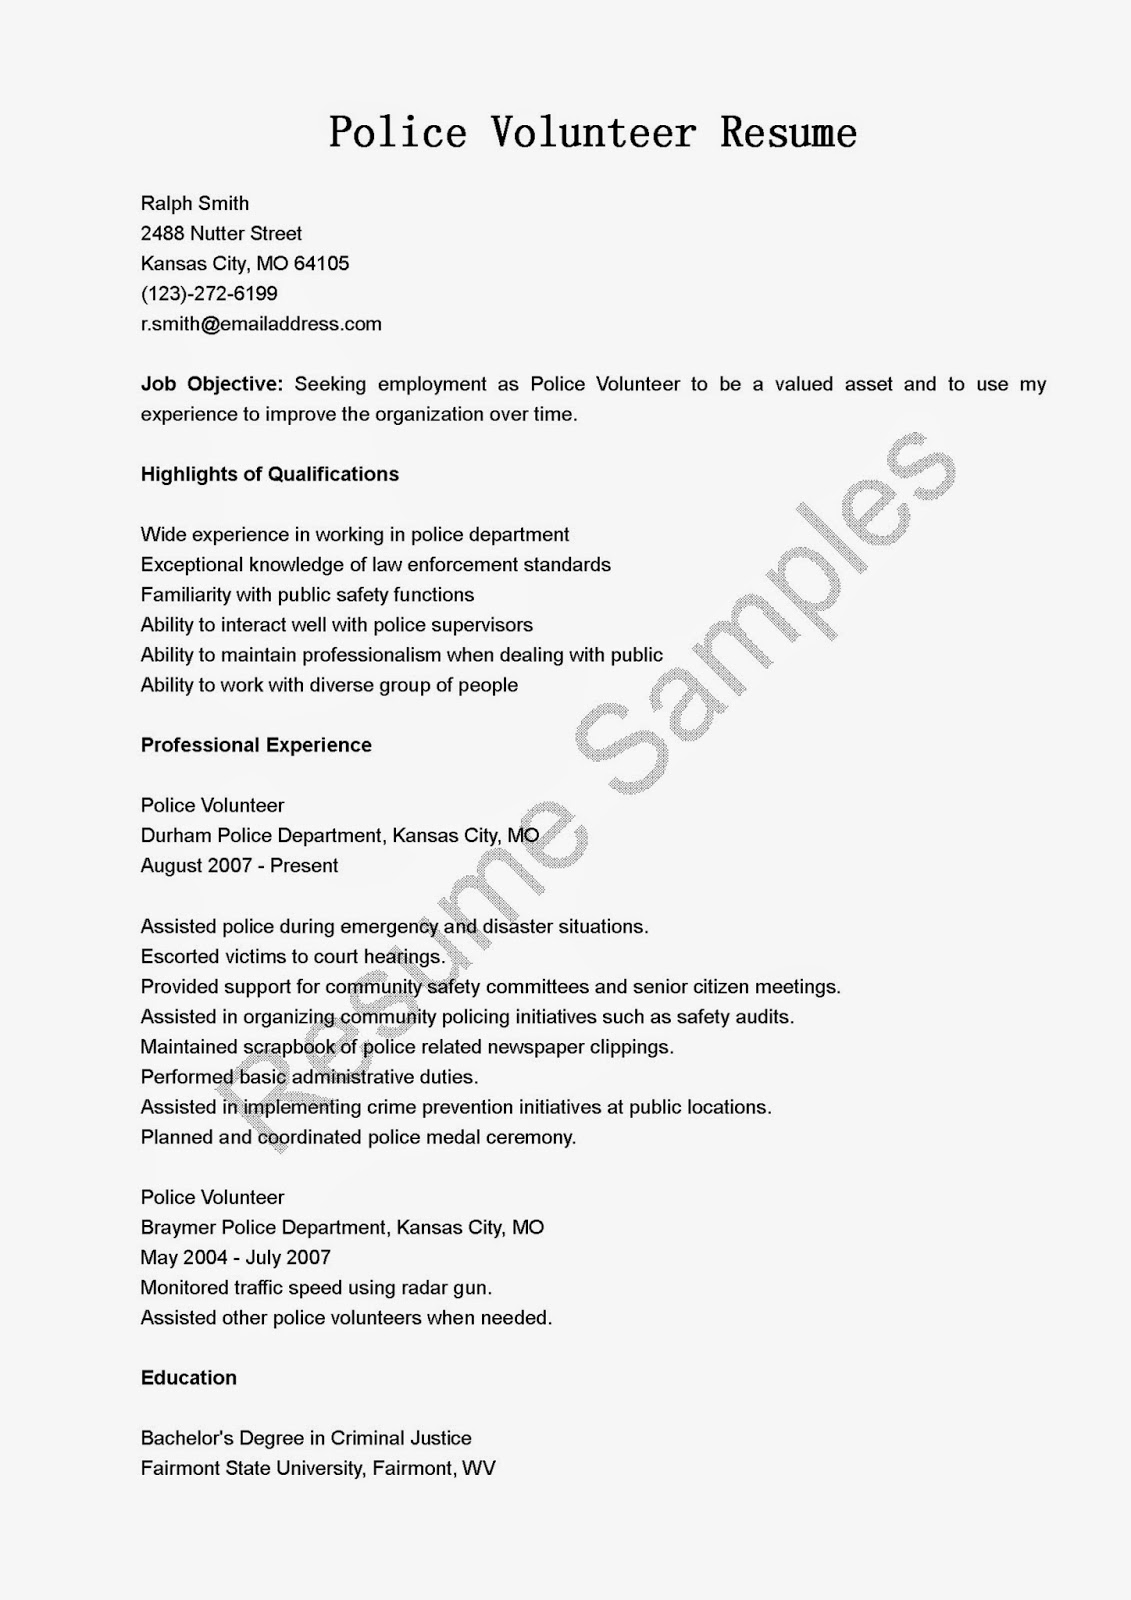 Volunteer Resume Sample Galerella Ribbed For Her Resume Animal  MyPerfectResume Com Resume Template Gray Timeless Timeless  Objective Ideas For Resume